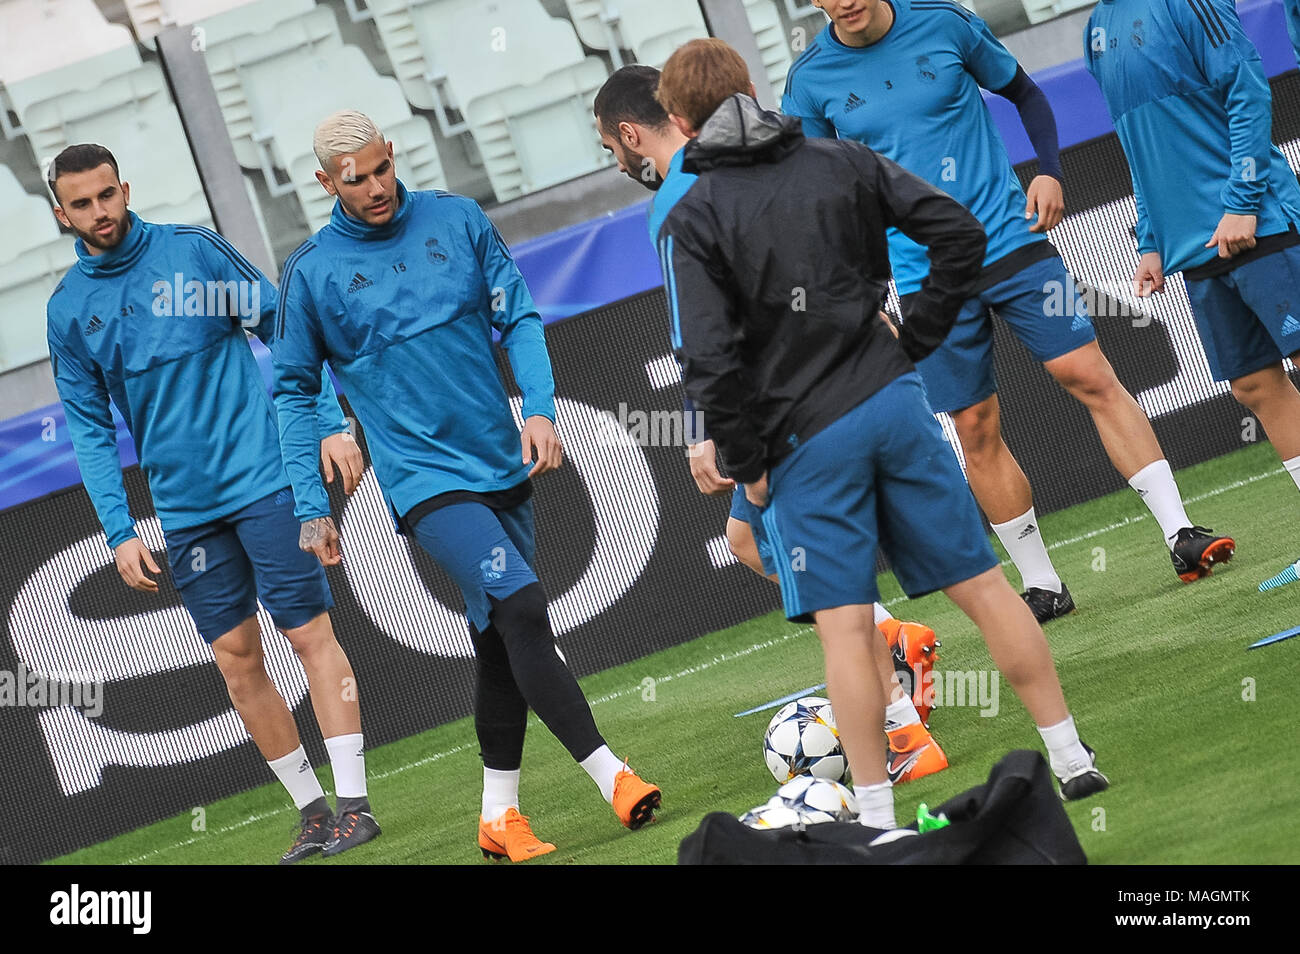 Turin, Italy, 2 April 2018. during the media conference before UEFA Champions League's football match between Juventus FC and Real Madrid CF at Allianz Stadium on 3th April, 2018 in Turin, Italy. Credit: FABIO PETROSINO/Alamy Live News - Stock Image